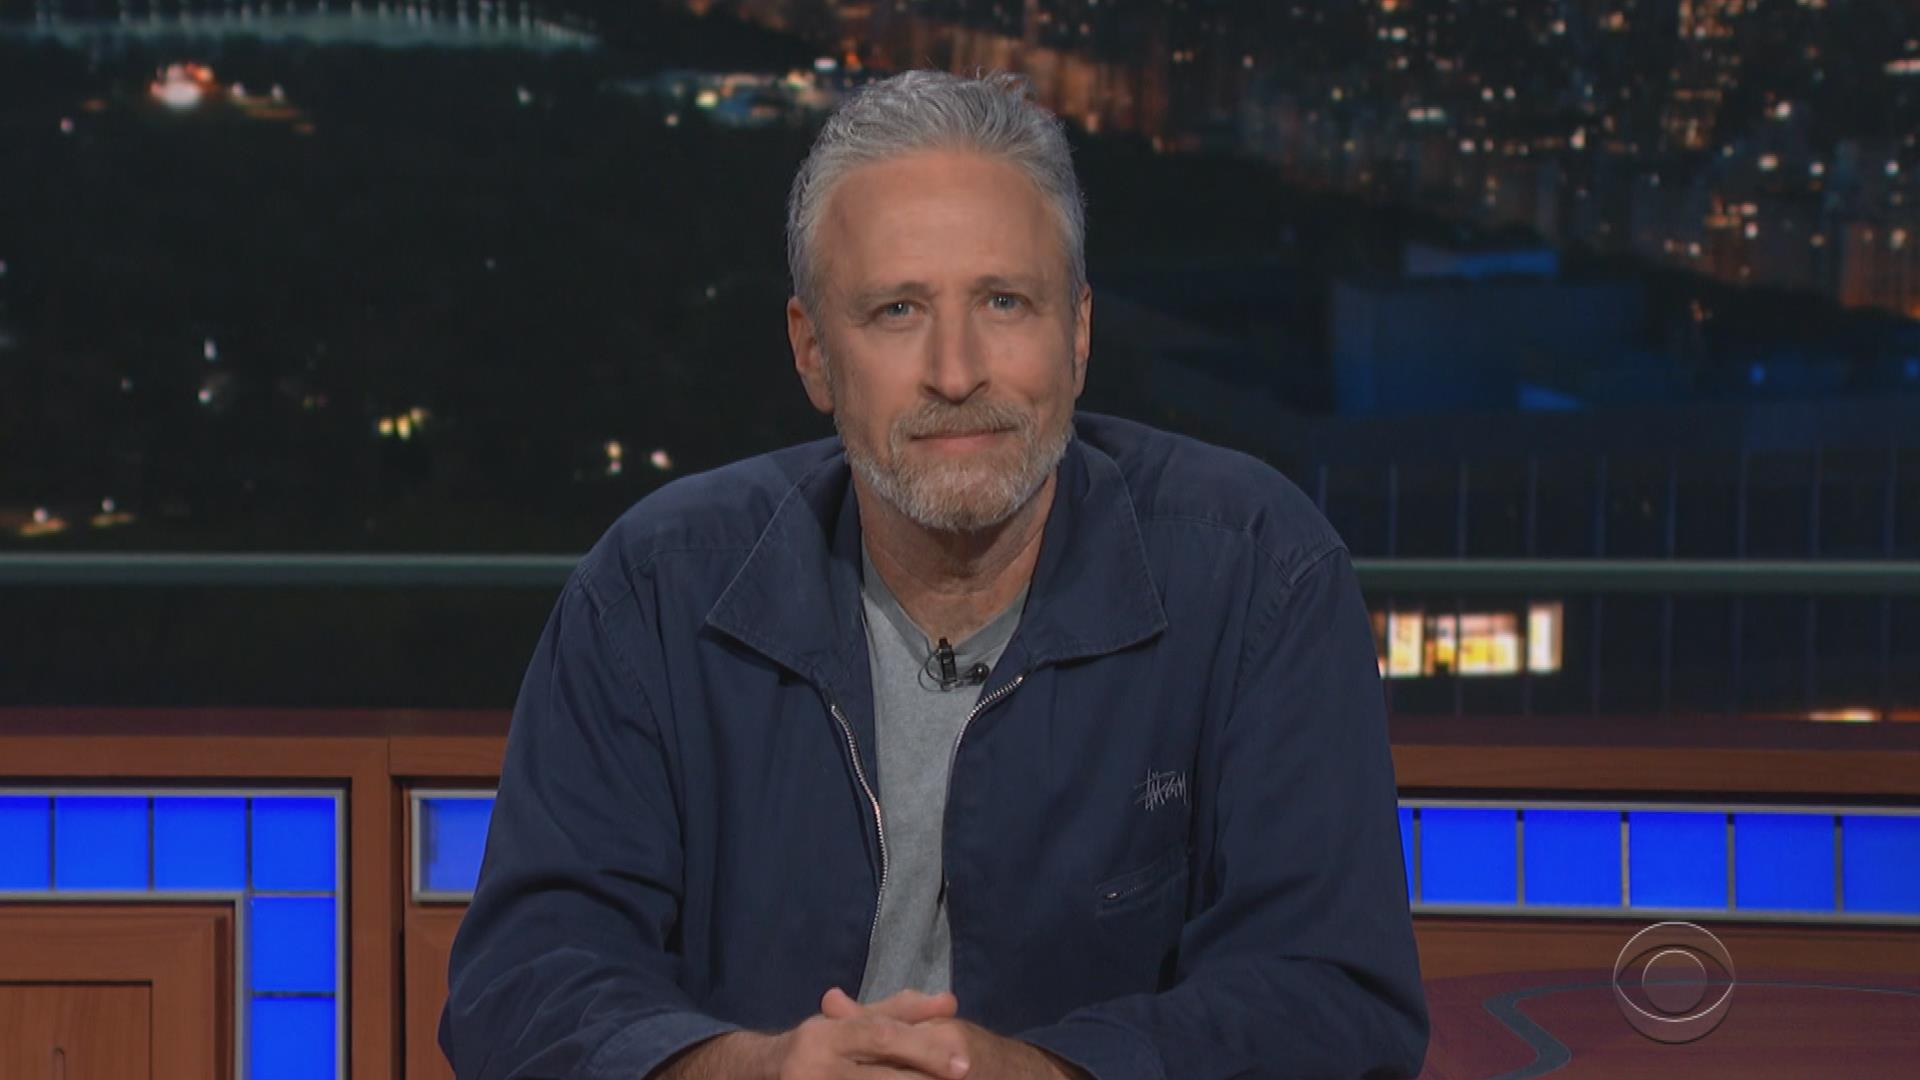 Jon Stewart fires back at McConnell on Late Show